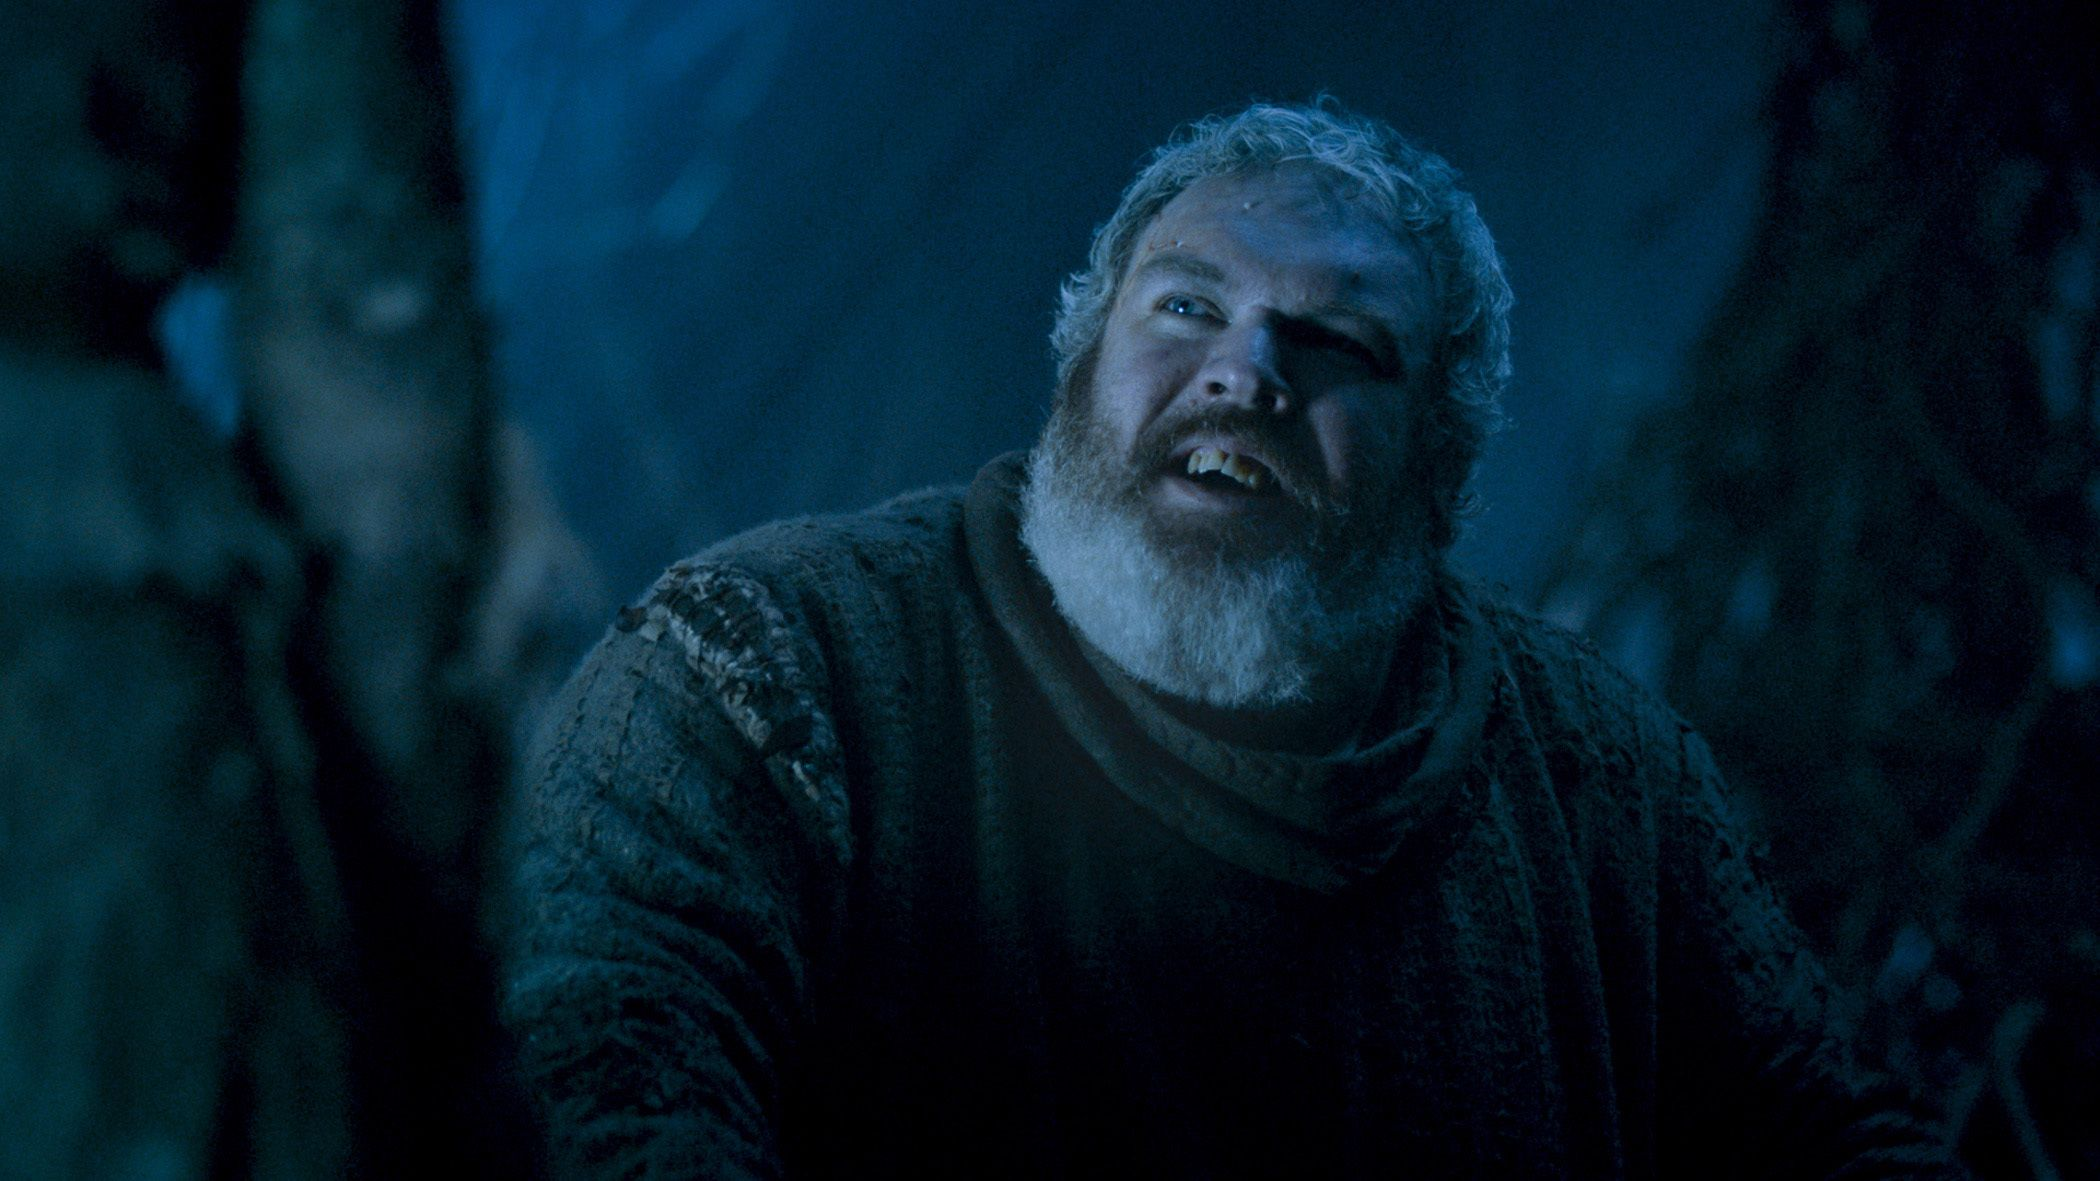 Game of Thrones' Hodor